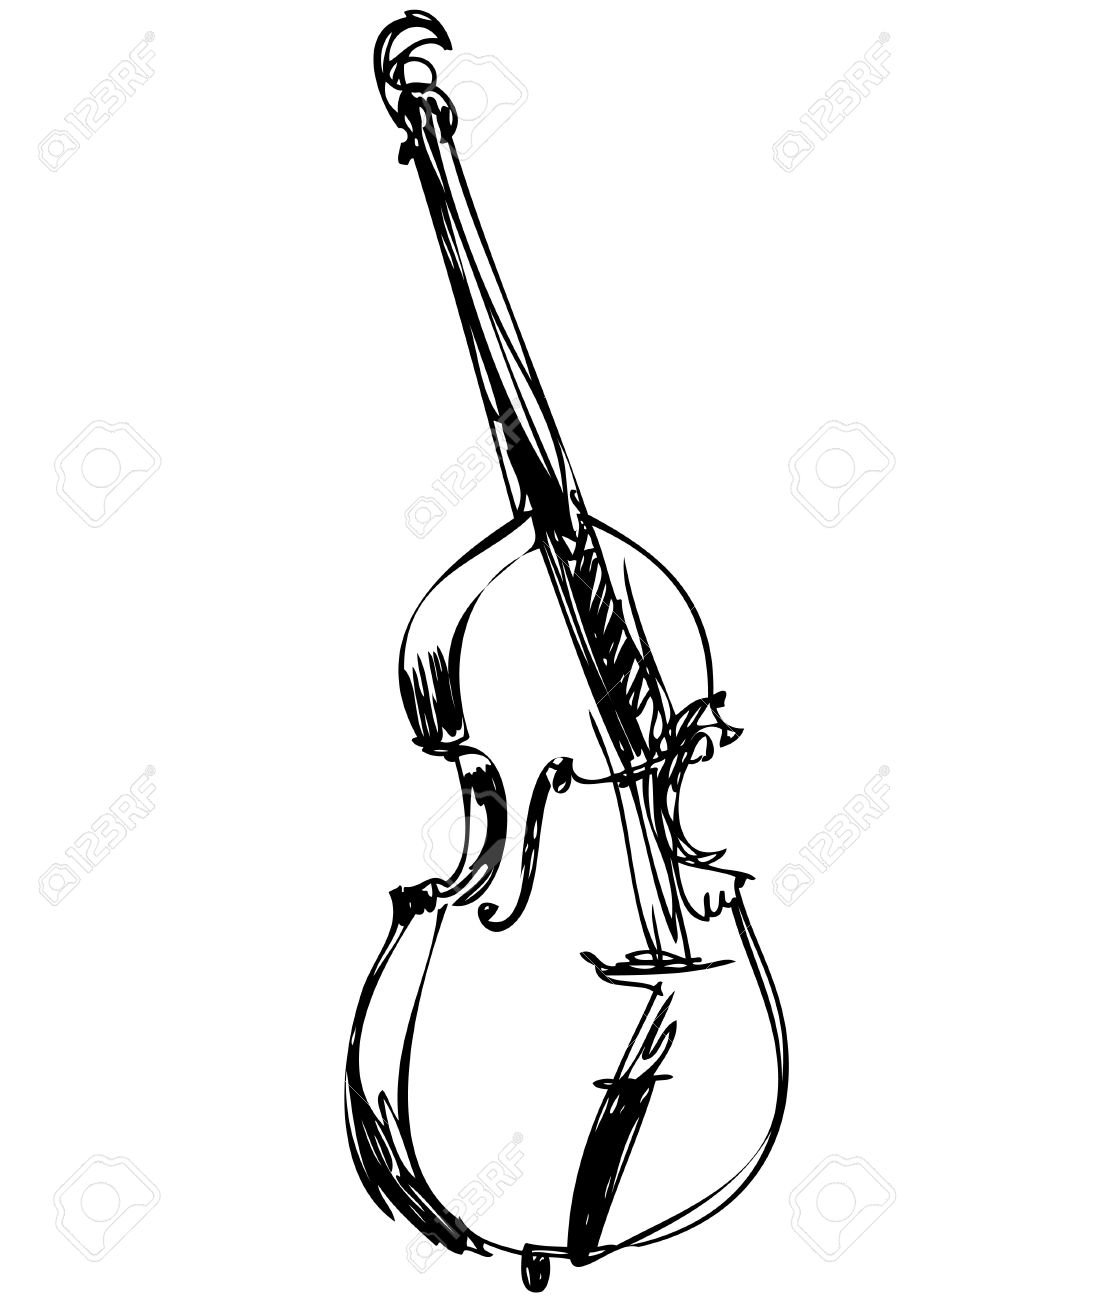 1109x1300 A Stringed Musical Instrument Orchestra Large Violin Bass Royalty